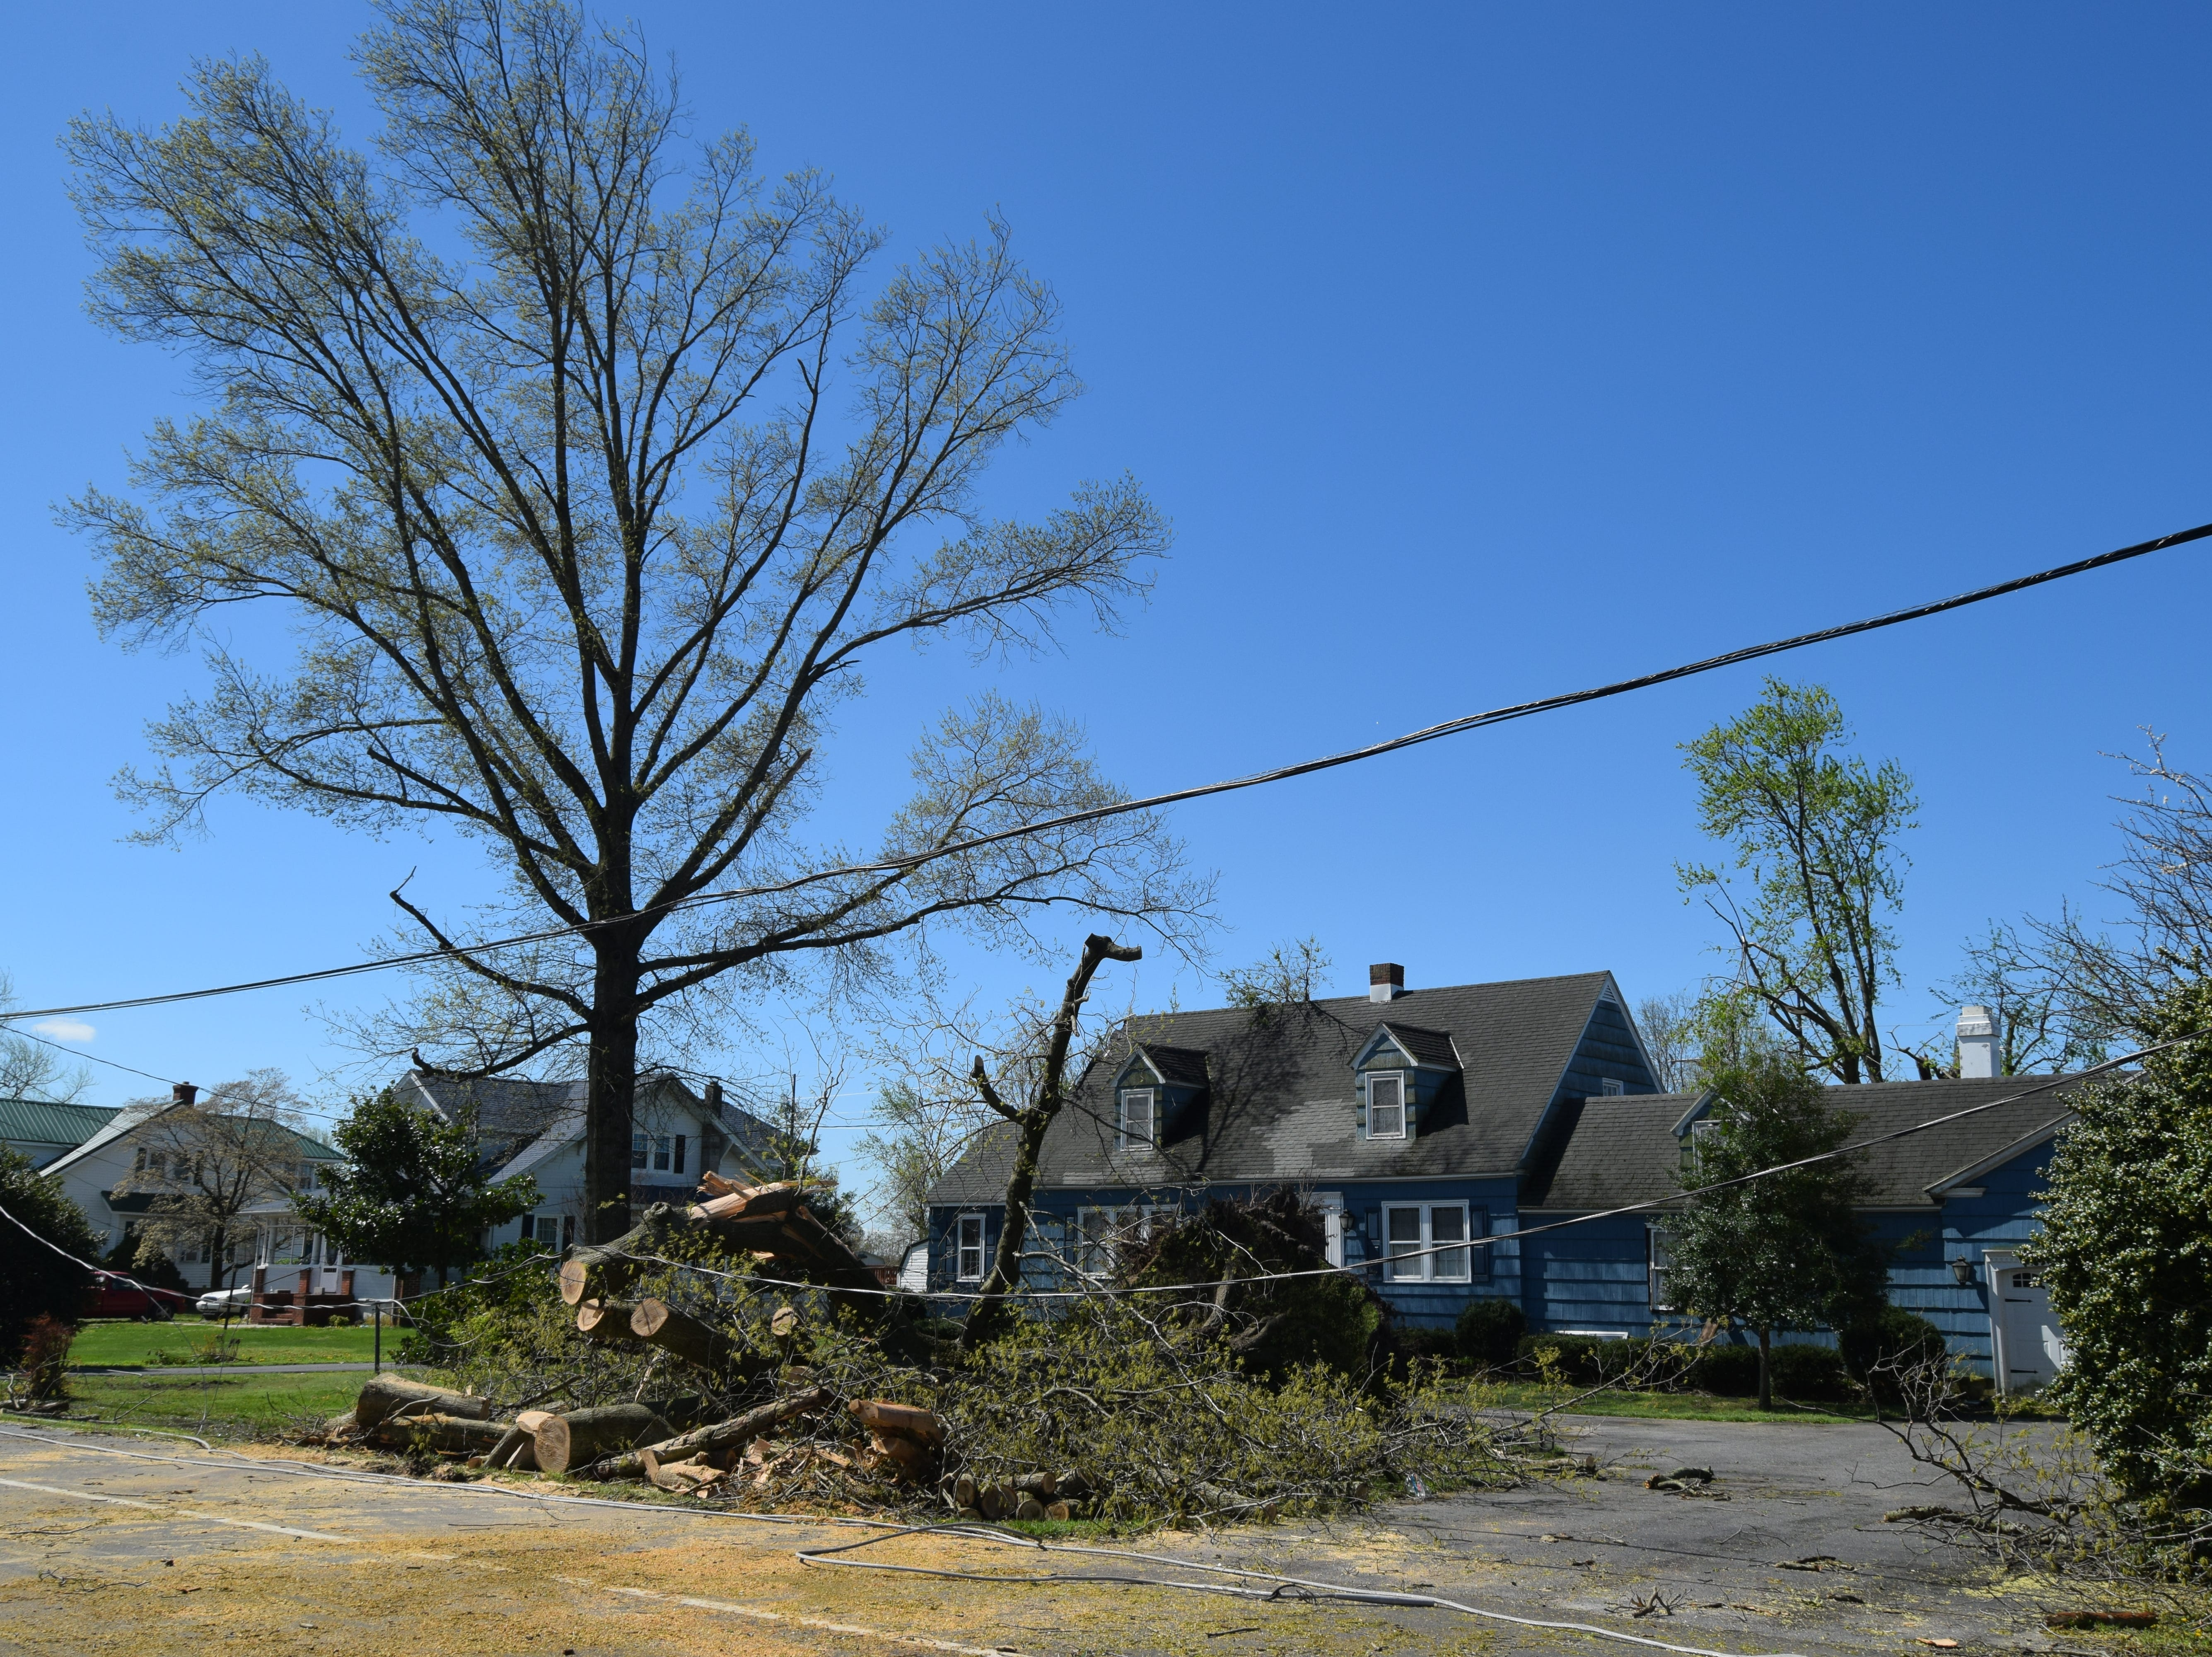 The Phillips family home on Seaford Road in Laurel suffered some damage from downed trees after the storm.